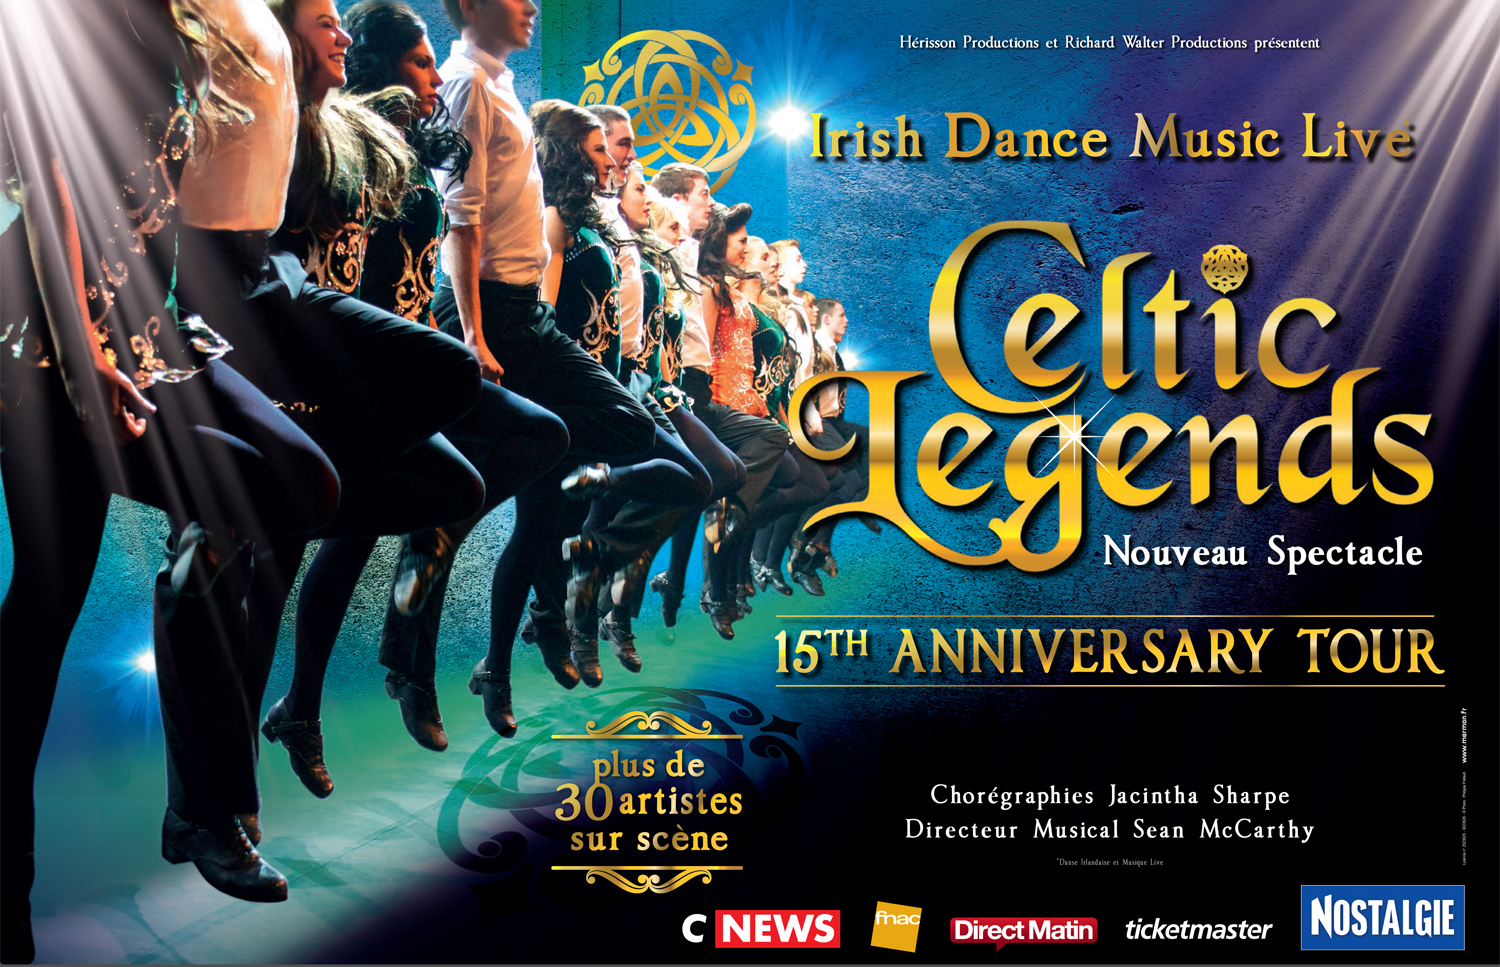 Celtic Legends, 15th Anniversary Tour